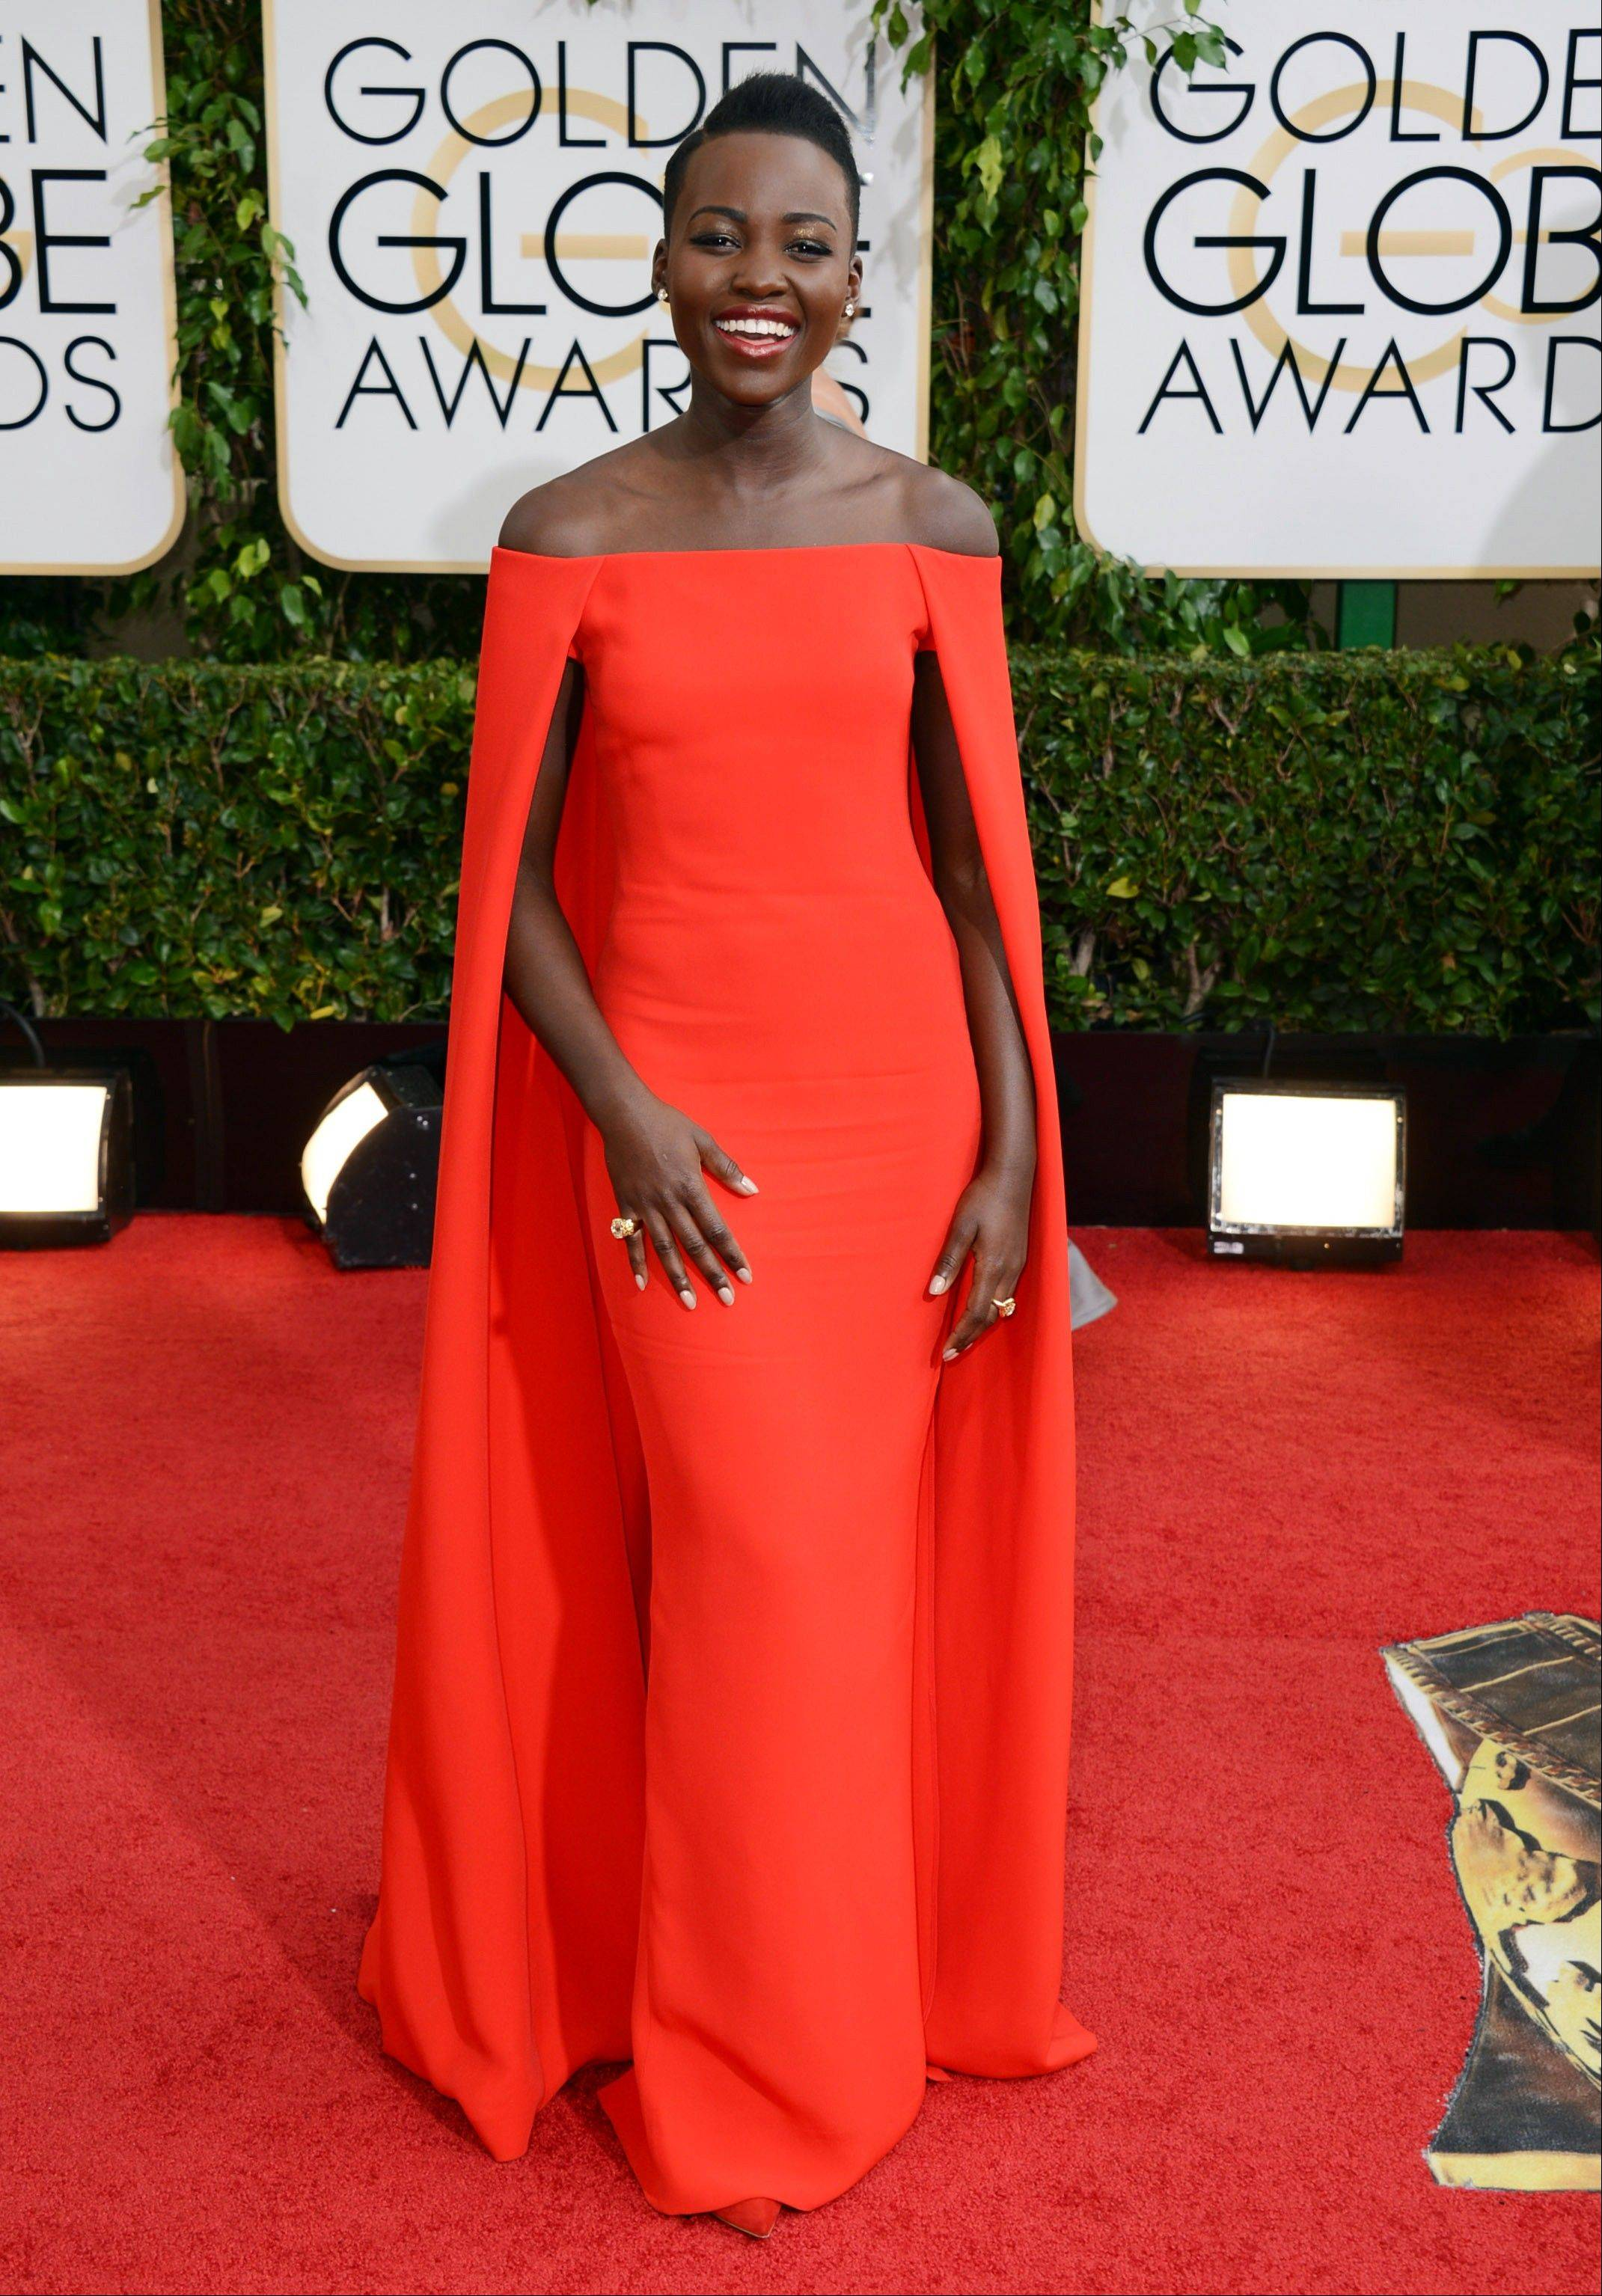 Newcomer Lupita Nyong'o stunned in an orange-red silk column gown with a cape from the Ralph Lauren Collection at the Golden Globes.